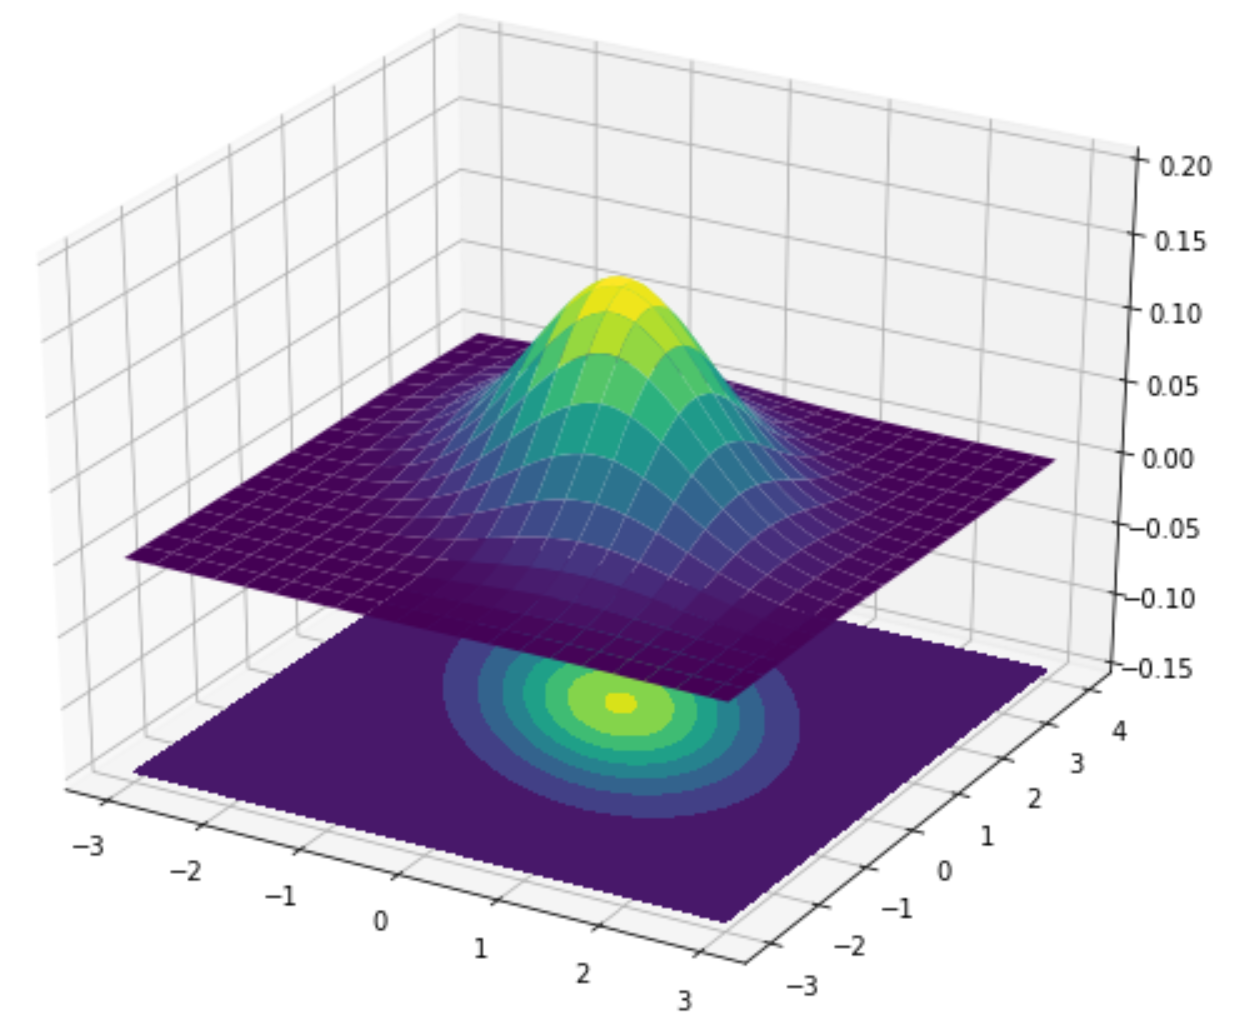 lines and colors of a contour plot correspond to a Gaussian distribution, building a green hump with a yellow top on a dark blue surface.